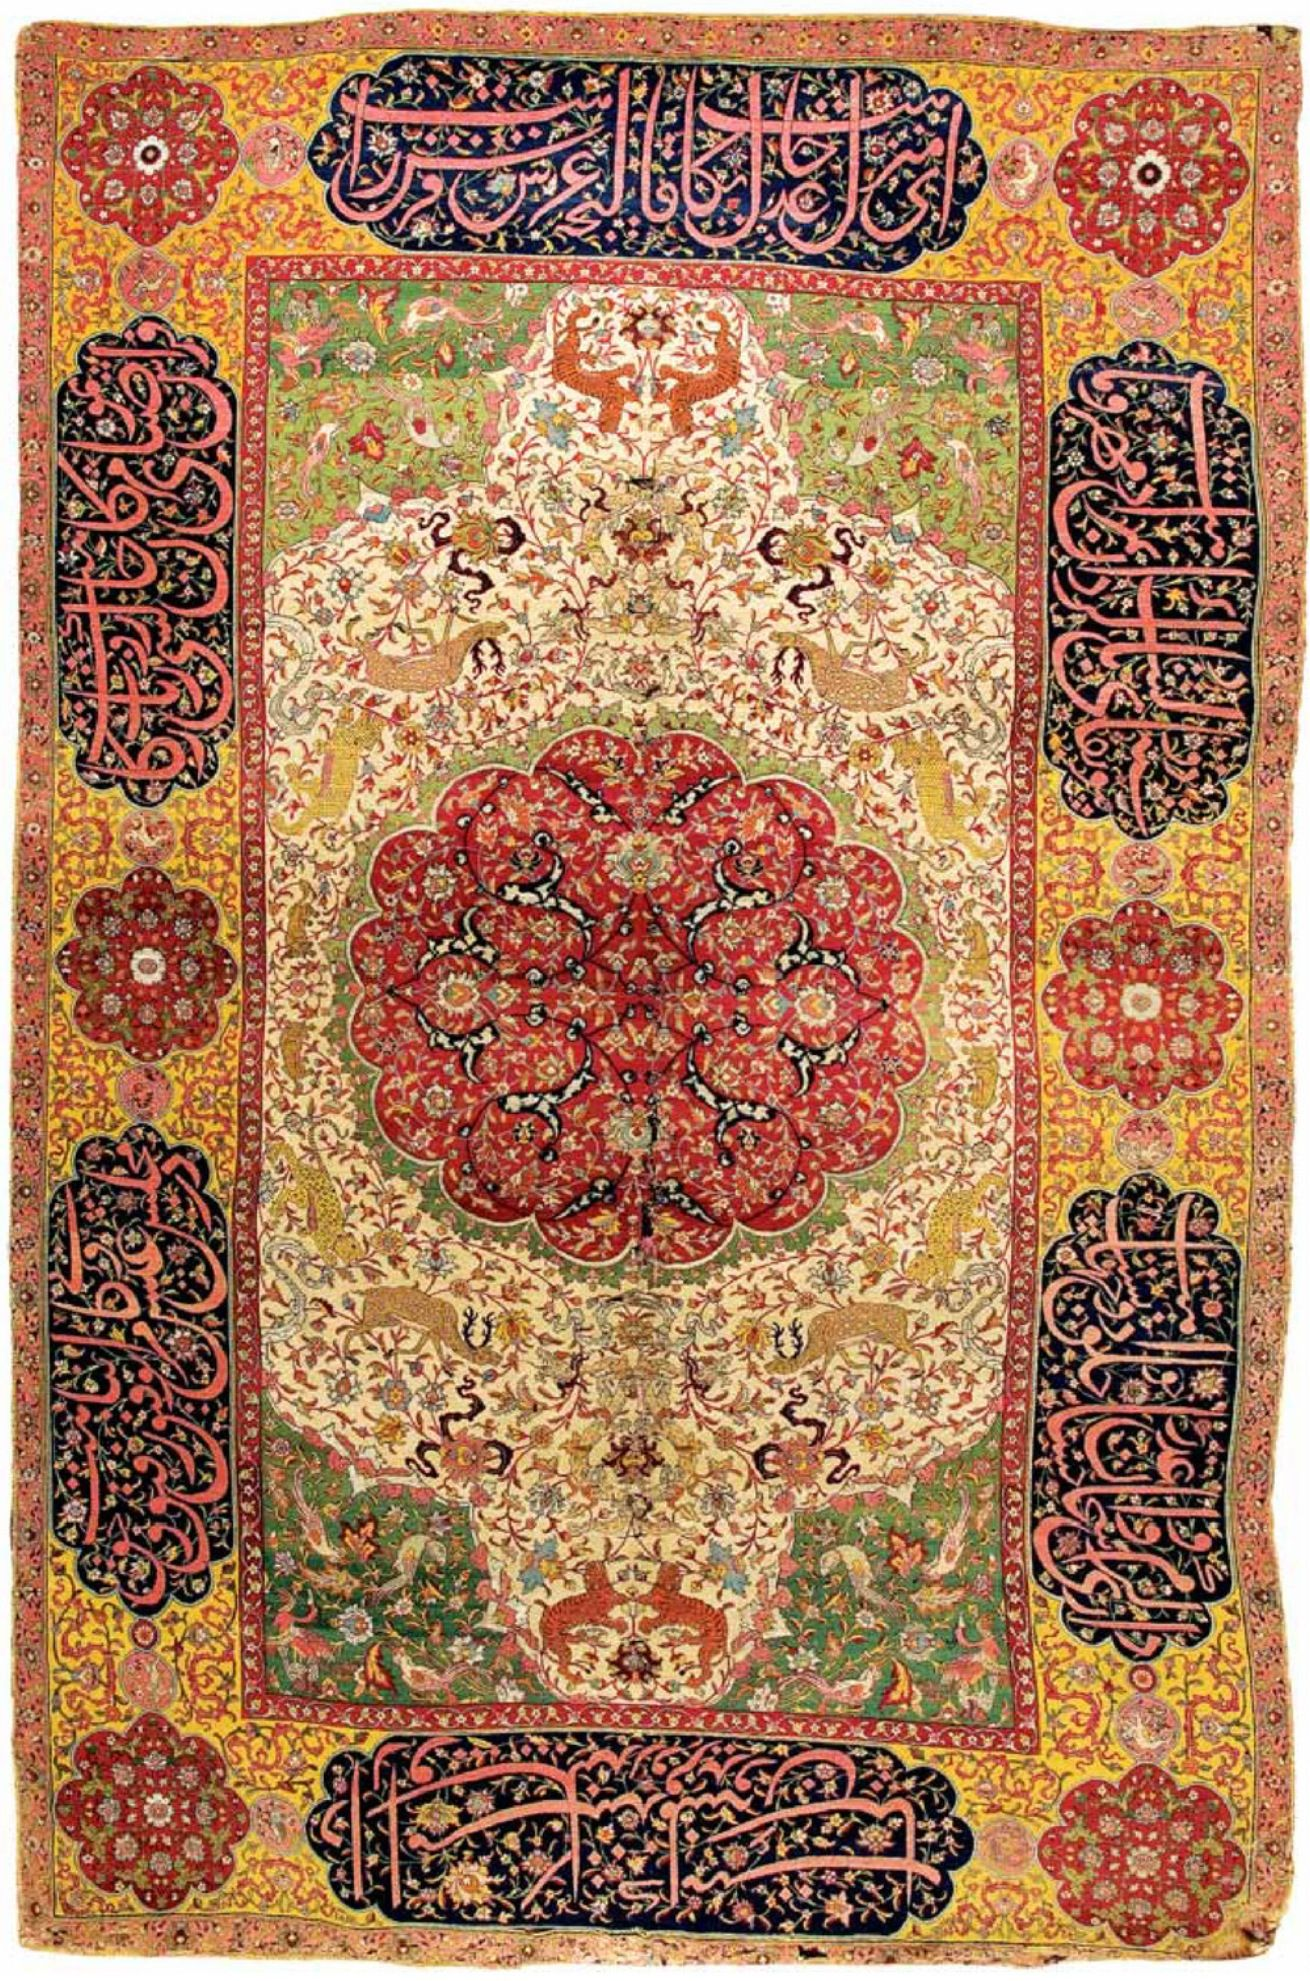 Lobanov Rostovsky Salting Rug Central Persia Mid 16 Th Century Wool Pile On Silk Foundation 5 7 By 9 2 Sta Textured Carpet Antique Persian Carpet Rugs